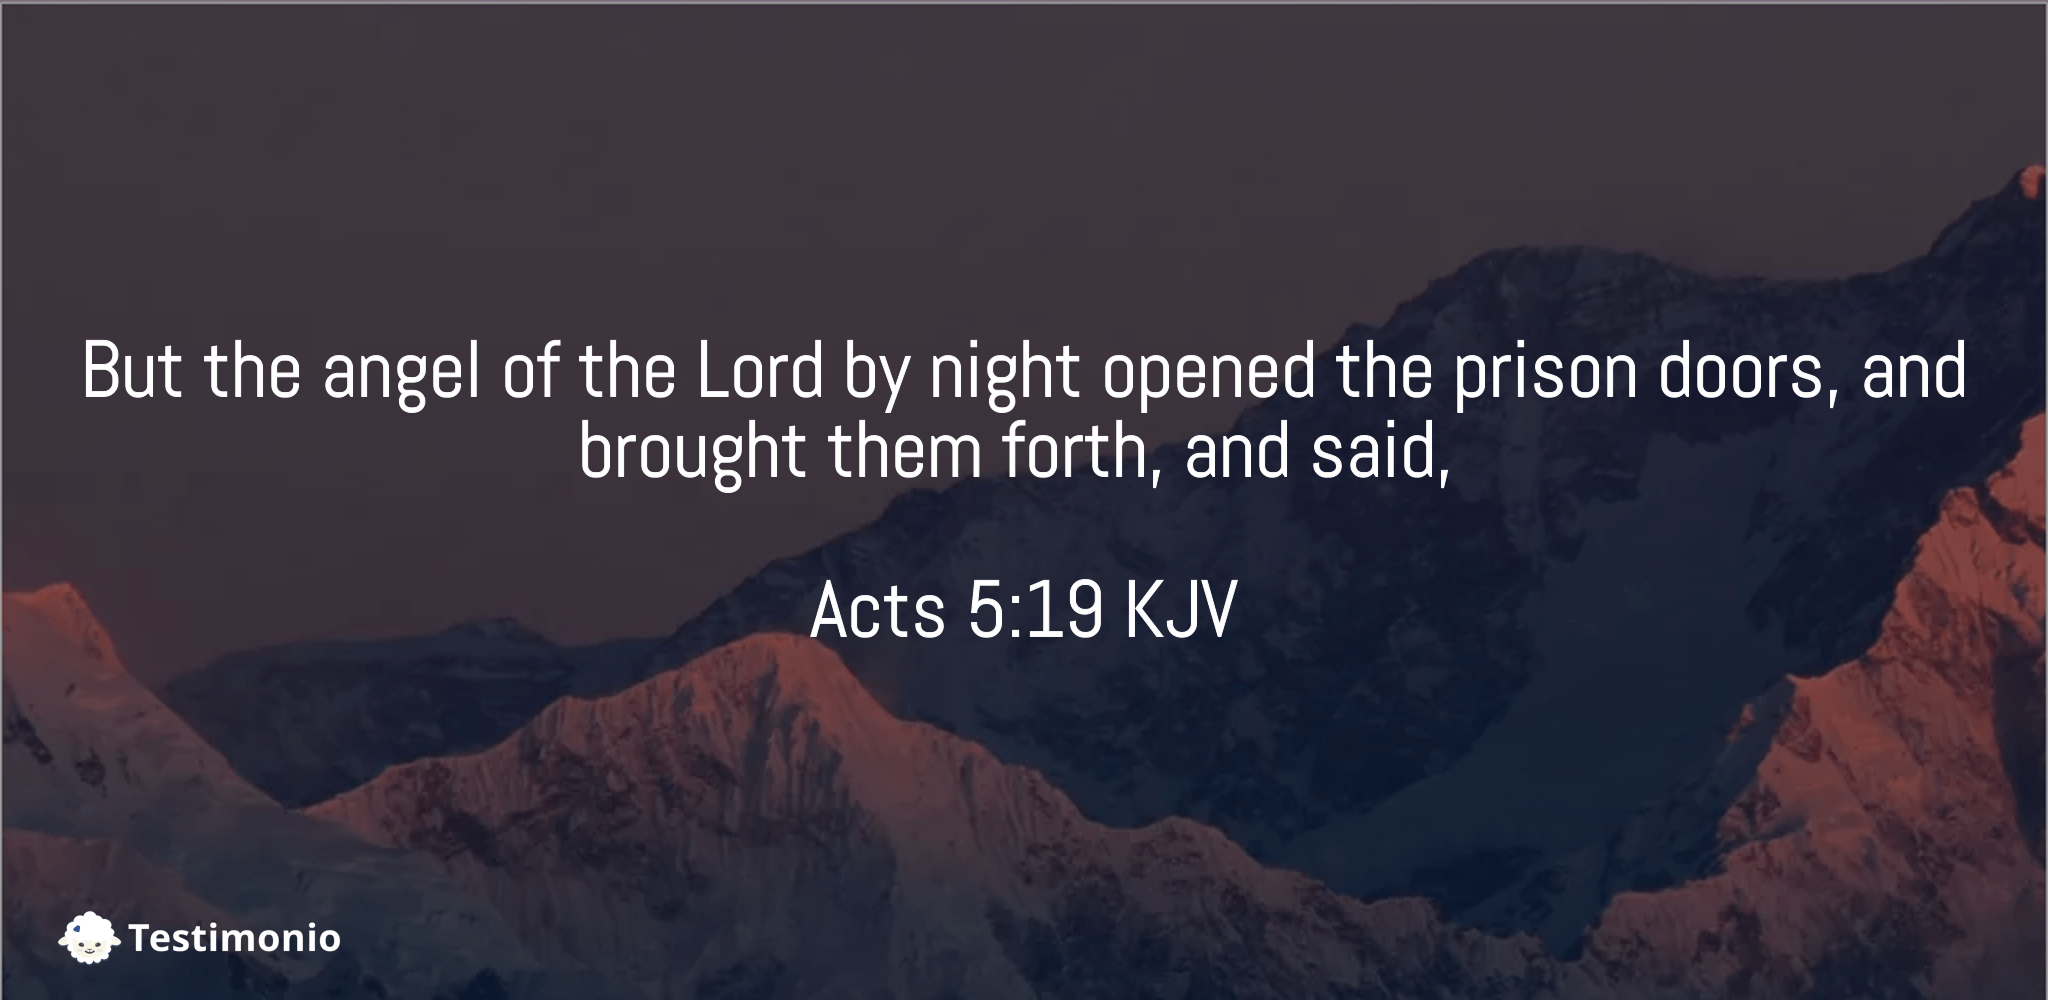 Acts 5:19